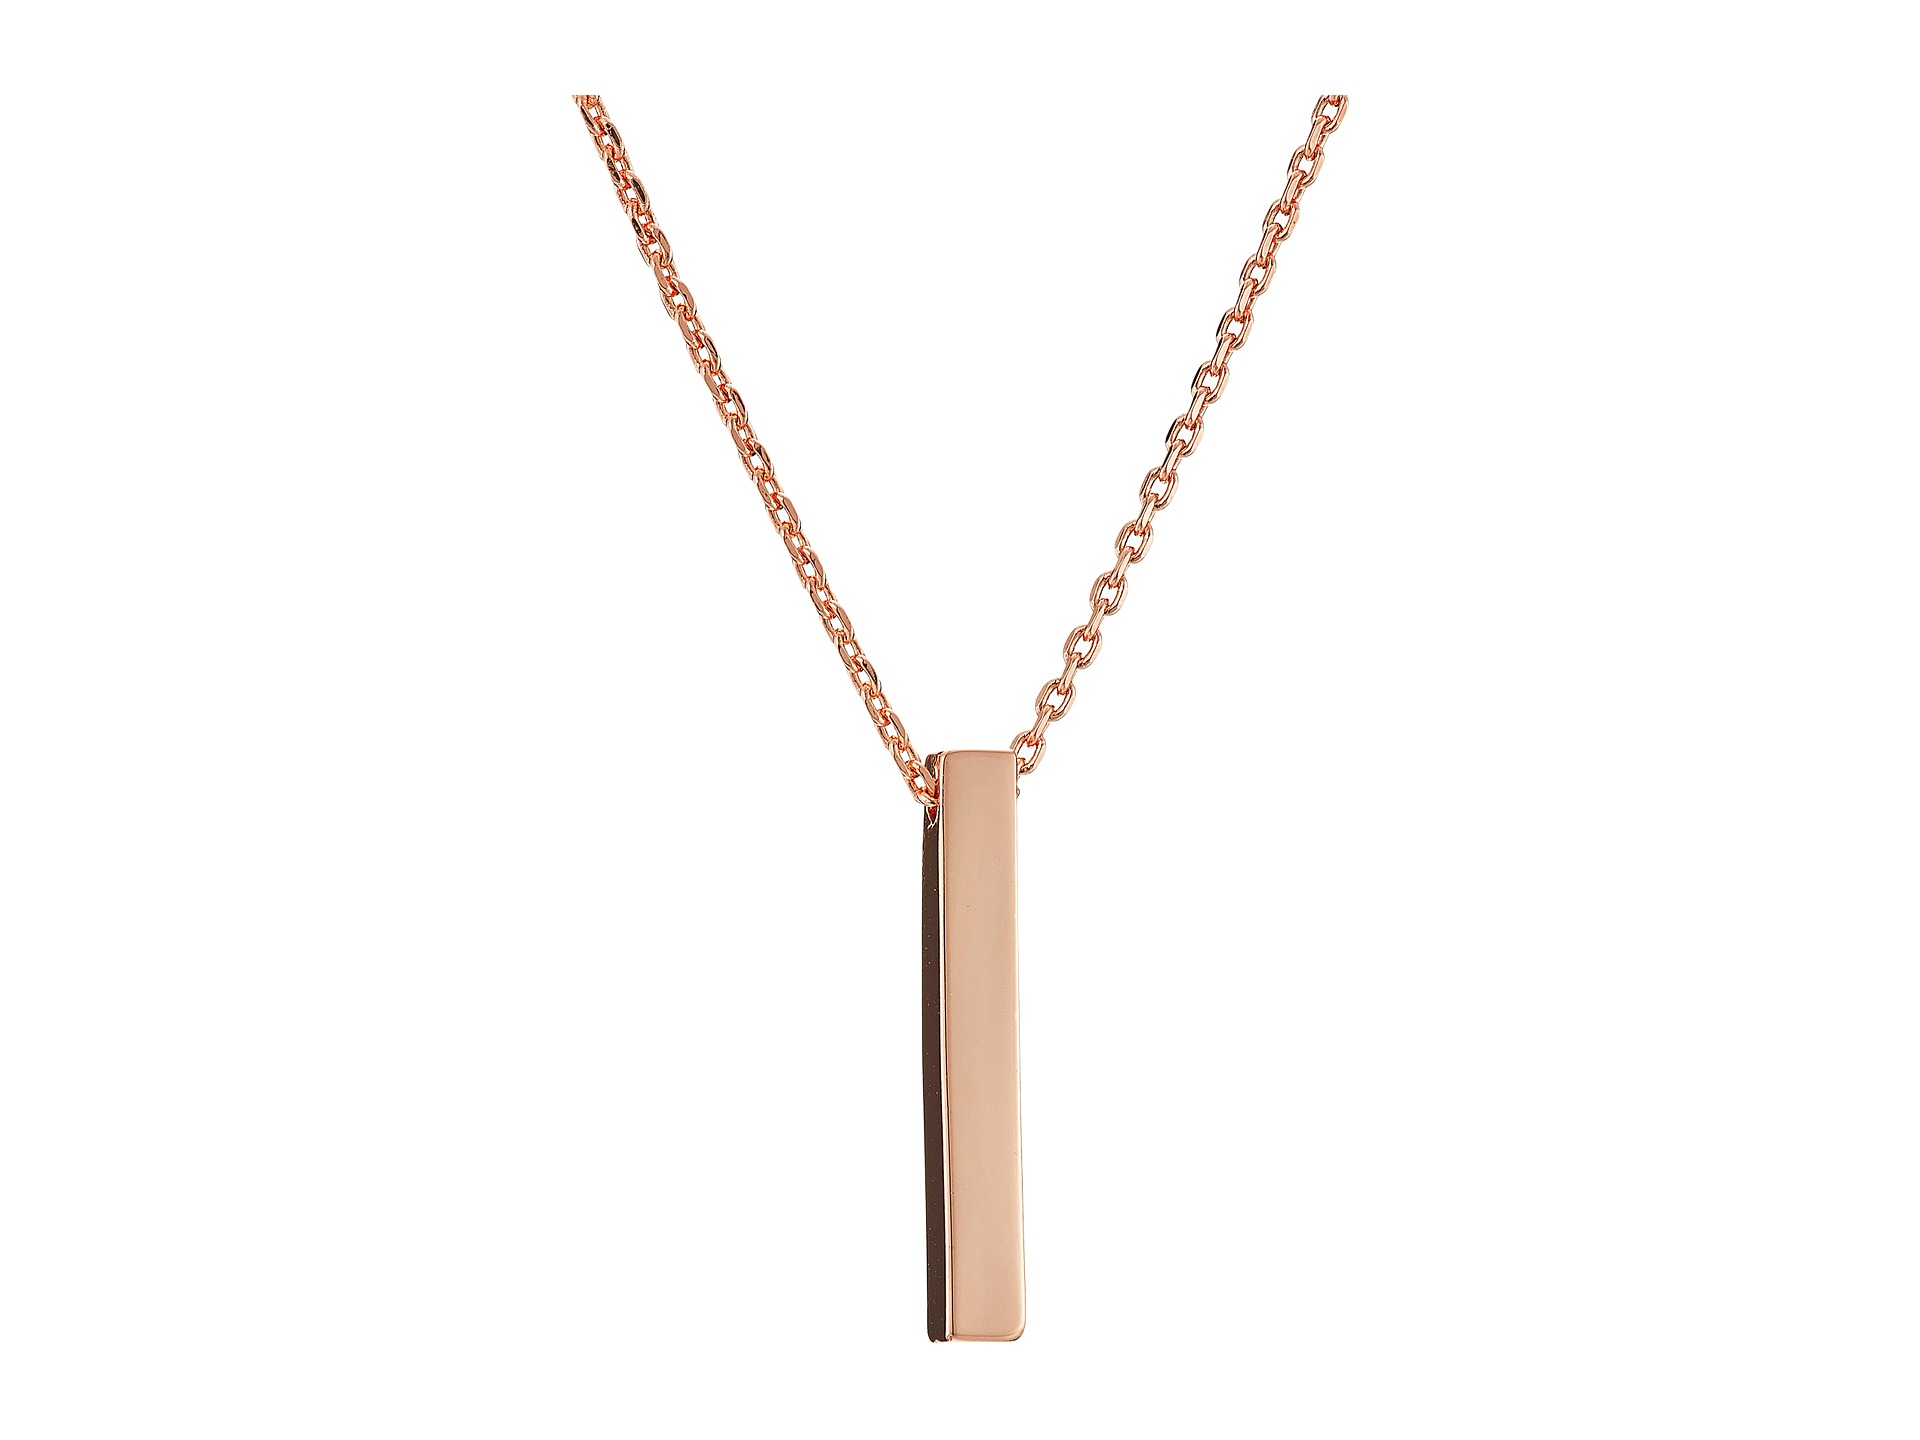 connection bar pendant necklace at zappos